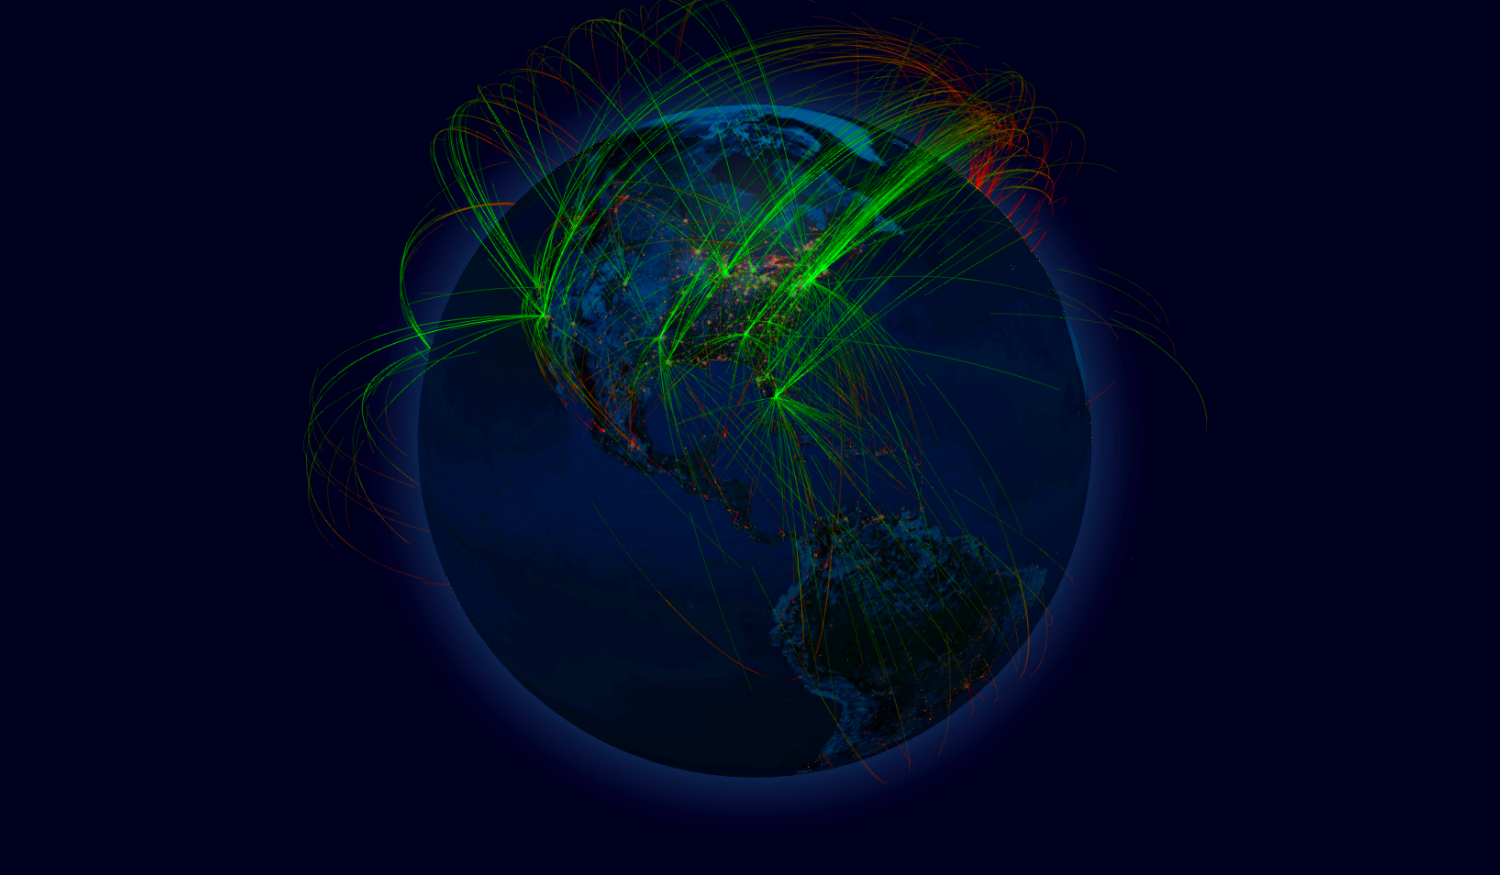 New DDoS attack vector discovered in DCCP protocol